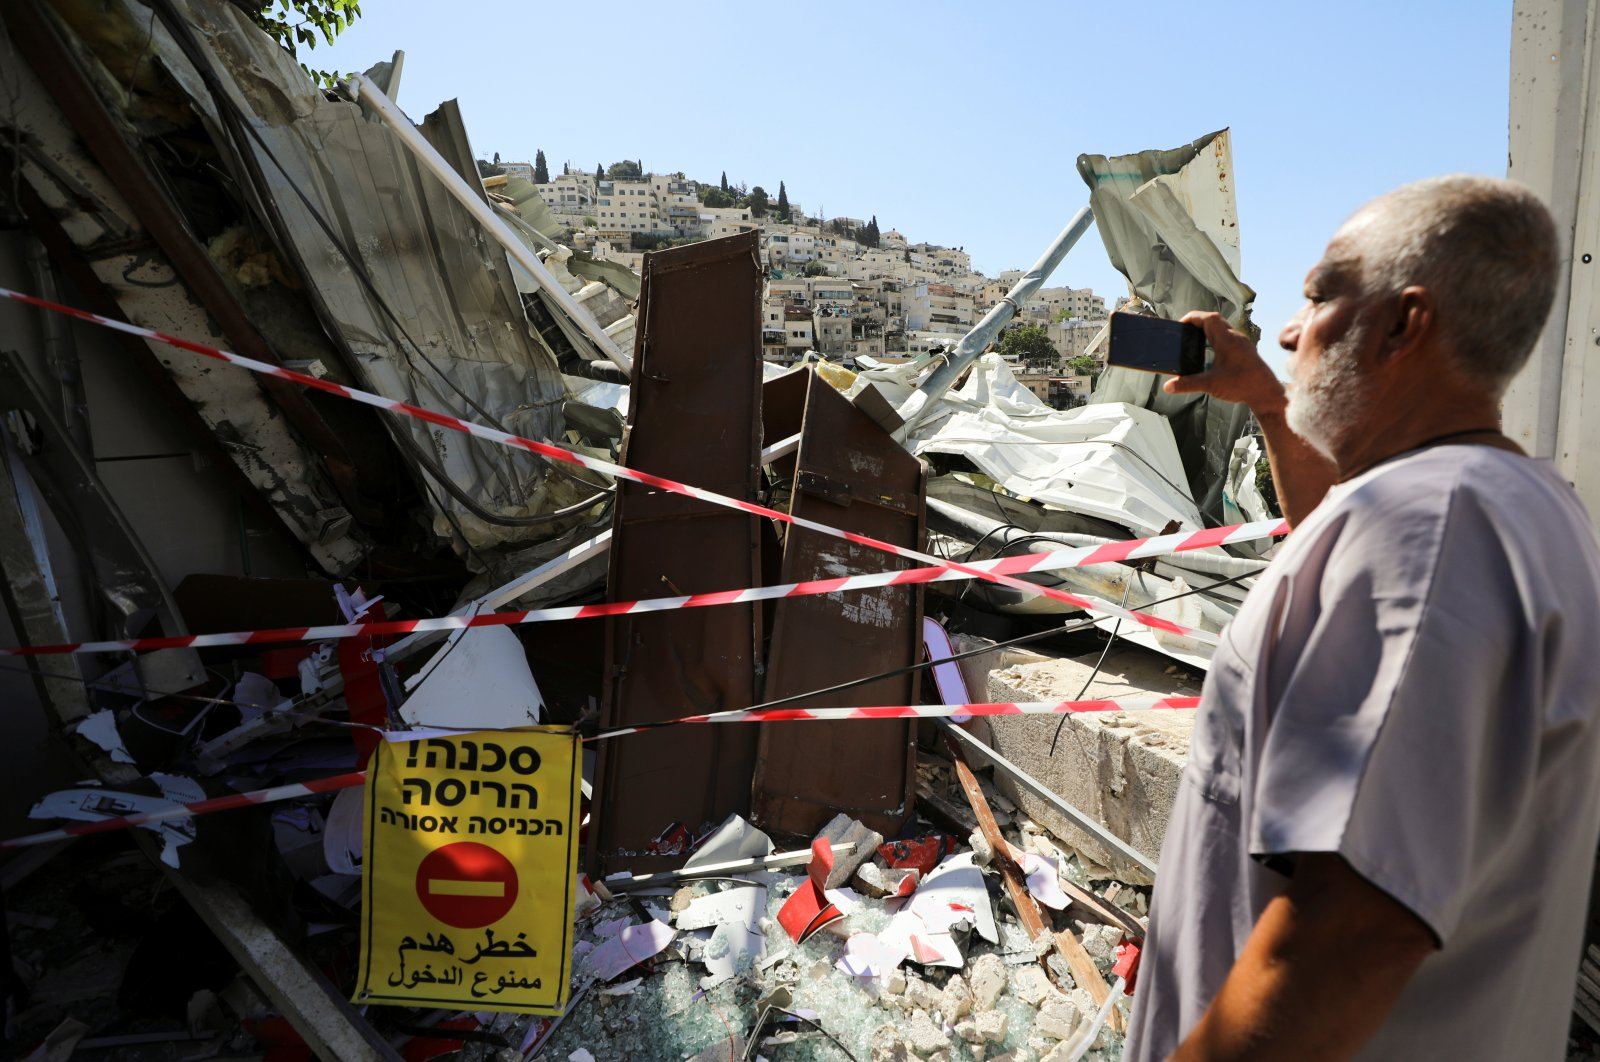 A Palestinian man uses his mobile phone as he stands near the debris of a shop that Israel demolished in the Palestinian neighborhood of Silwan in occupied East Jerusalem, Palestine, June 29, 2021. (Reuters Photo)